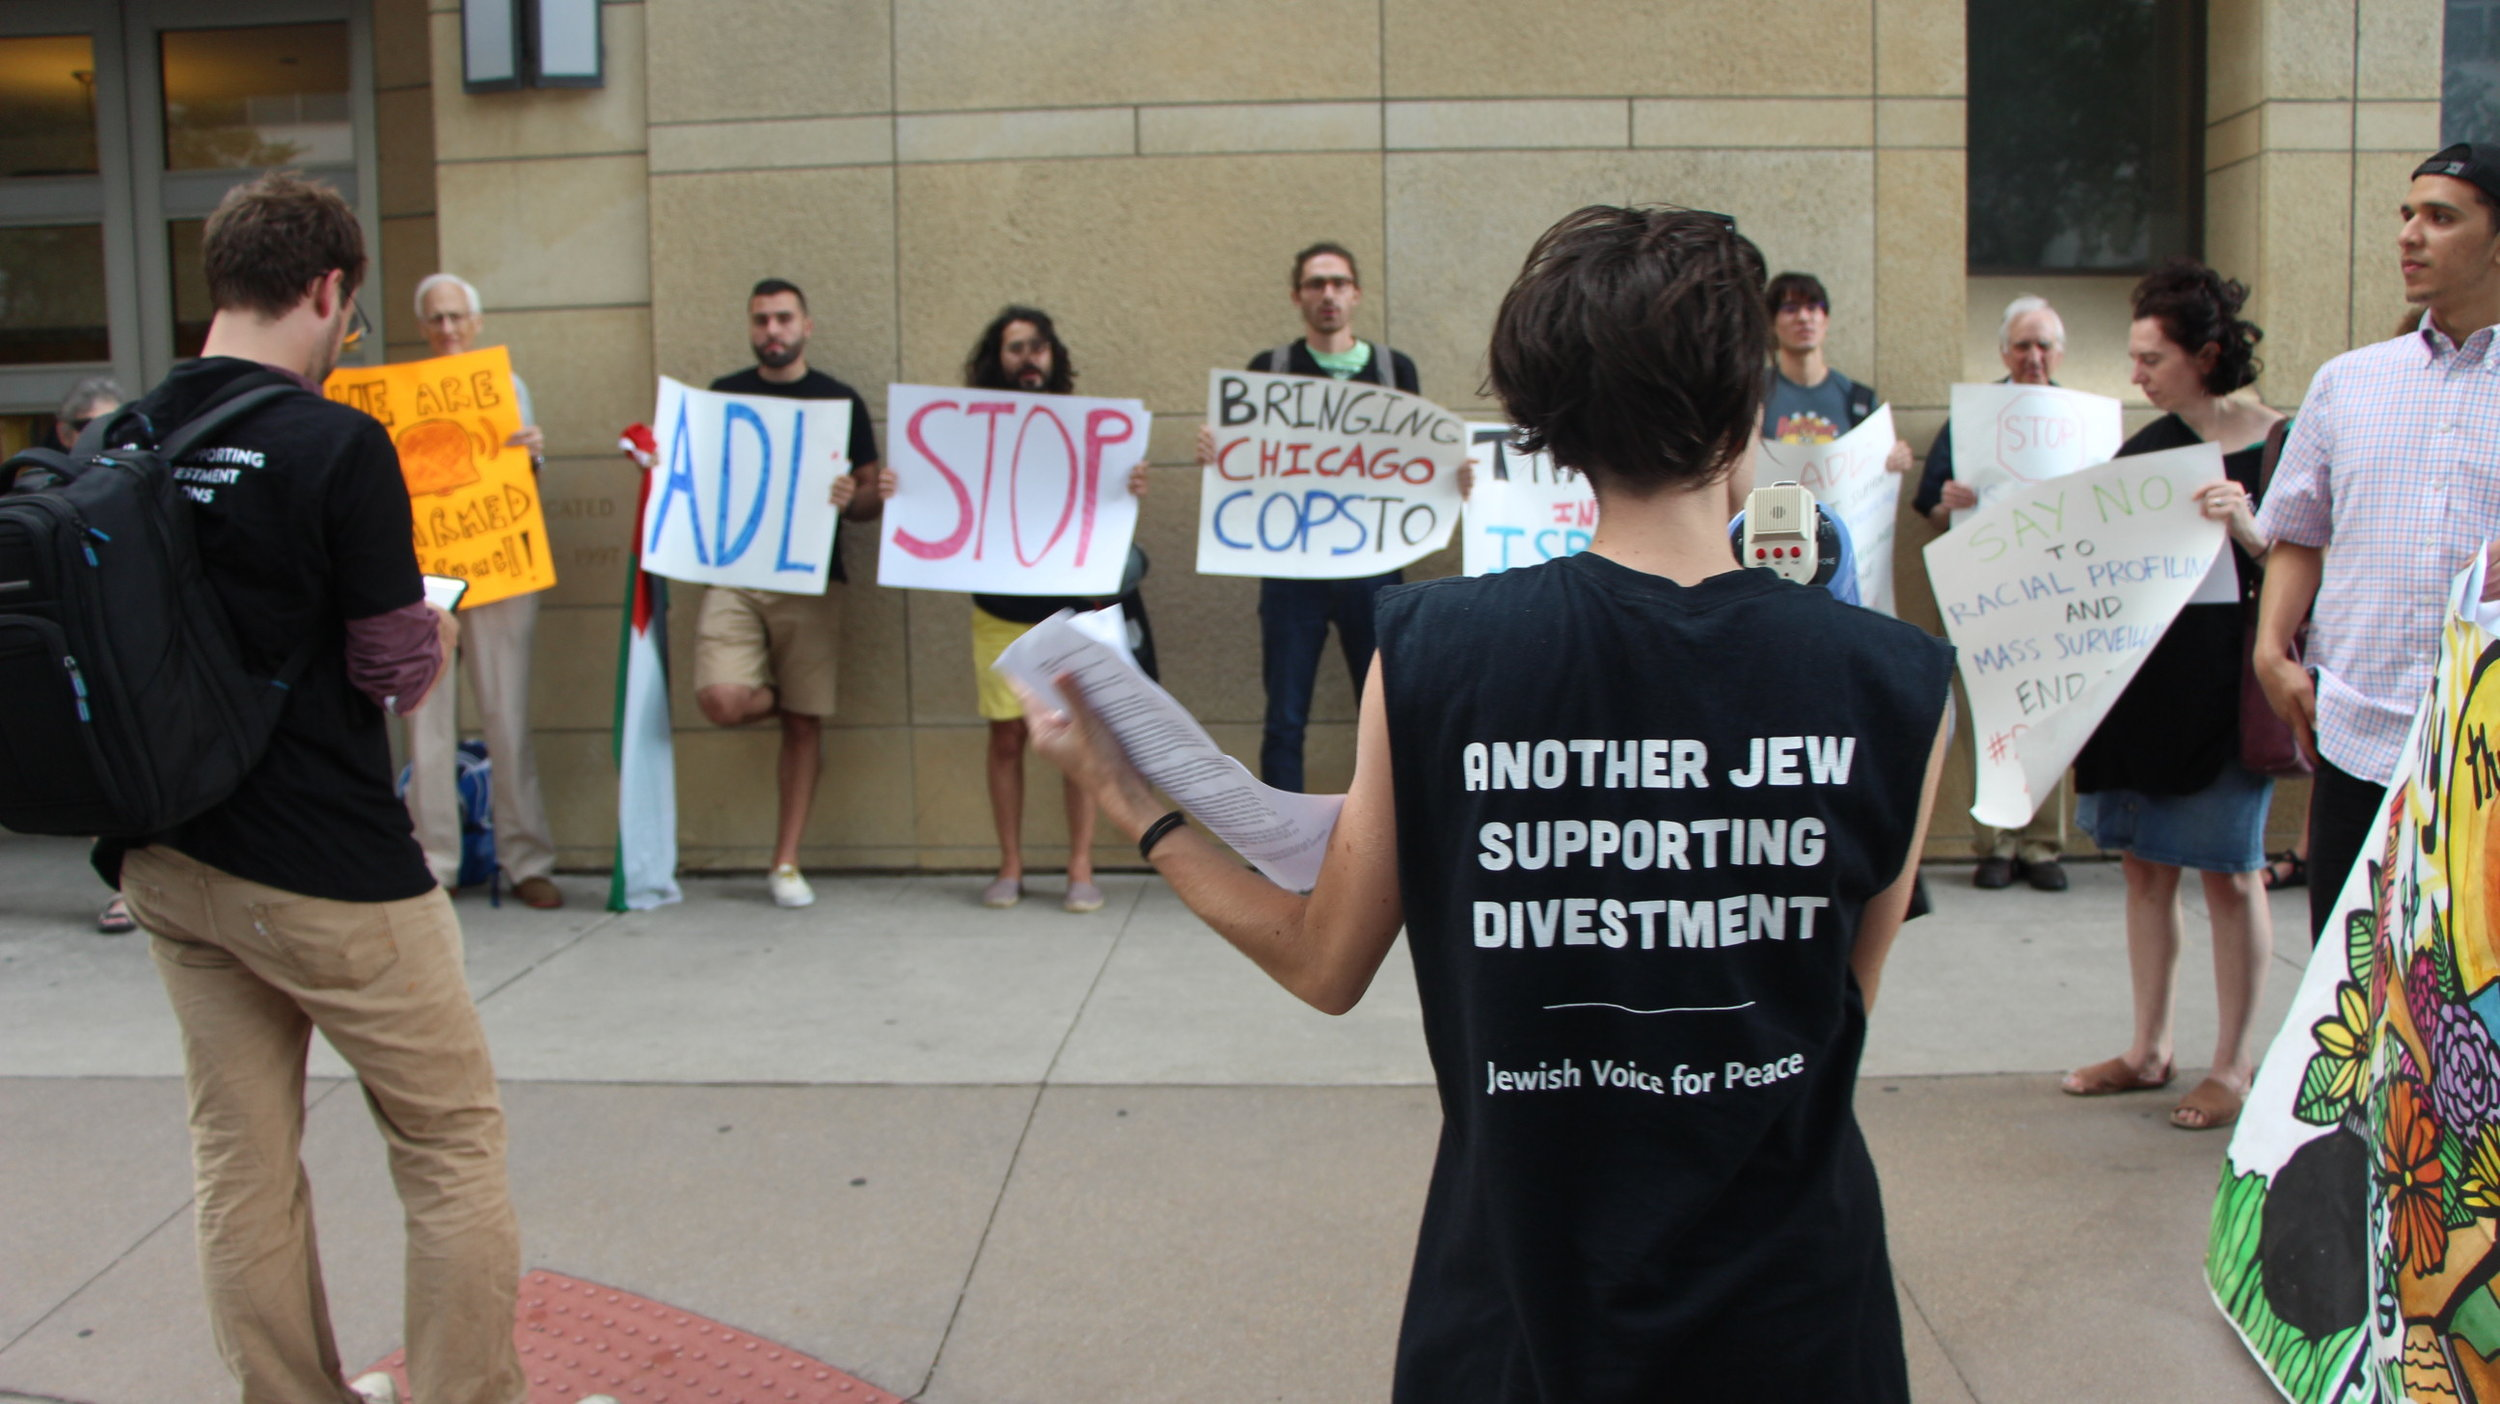 JVP Organizer Scout Bratt speaking to the crowd outside of the Chicago Sinai Congregation to protest the ADL's police exchange program.    Photo by: Pascal Sabino